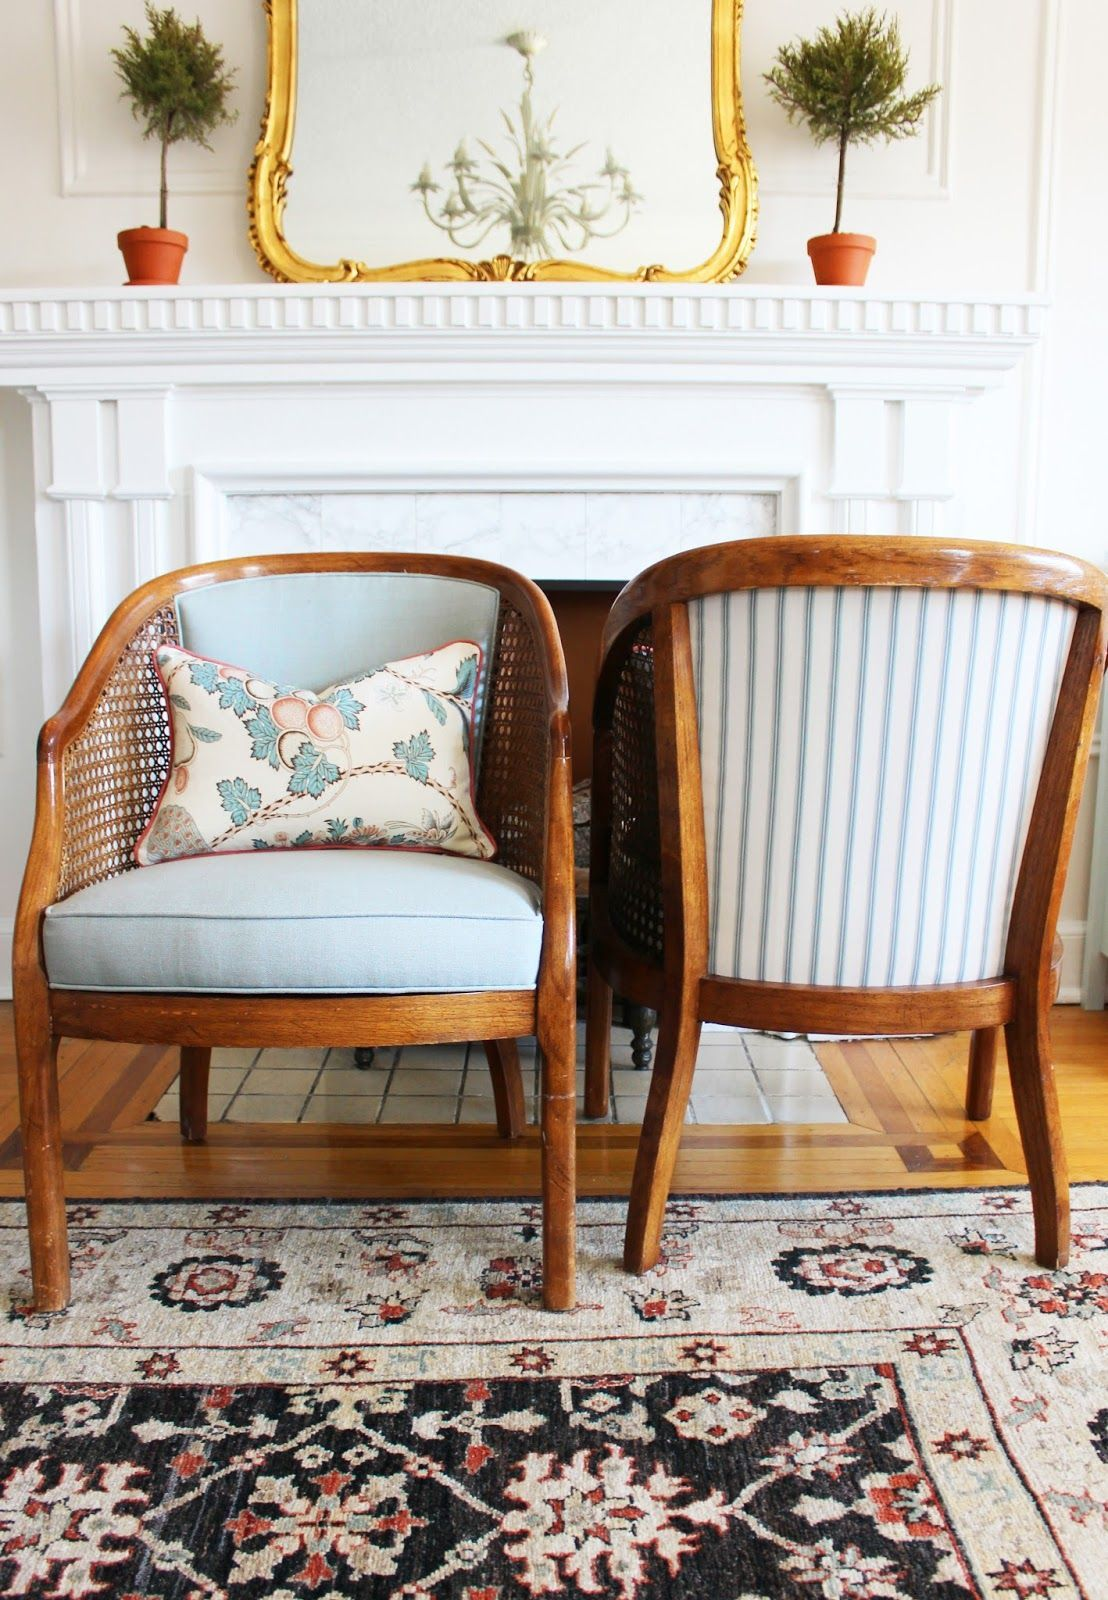 I Was Browsing Craigslist One Afternoon When I Saw A Listing For A Pair Of Vintage Cane Chairs On Sale At The Local Okay Not Local In 2020 Chair Makeover Furniture